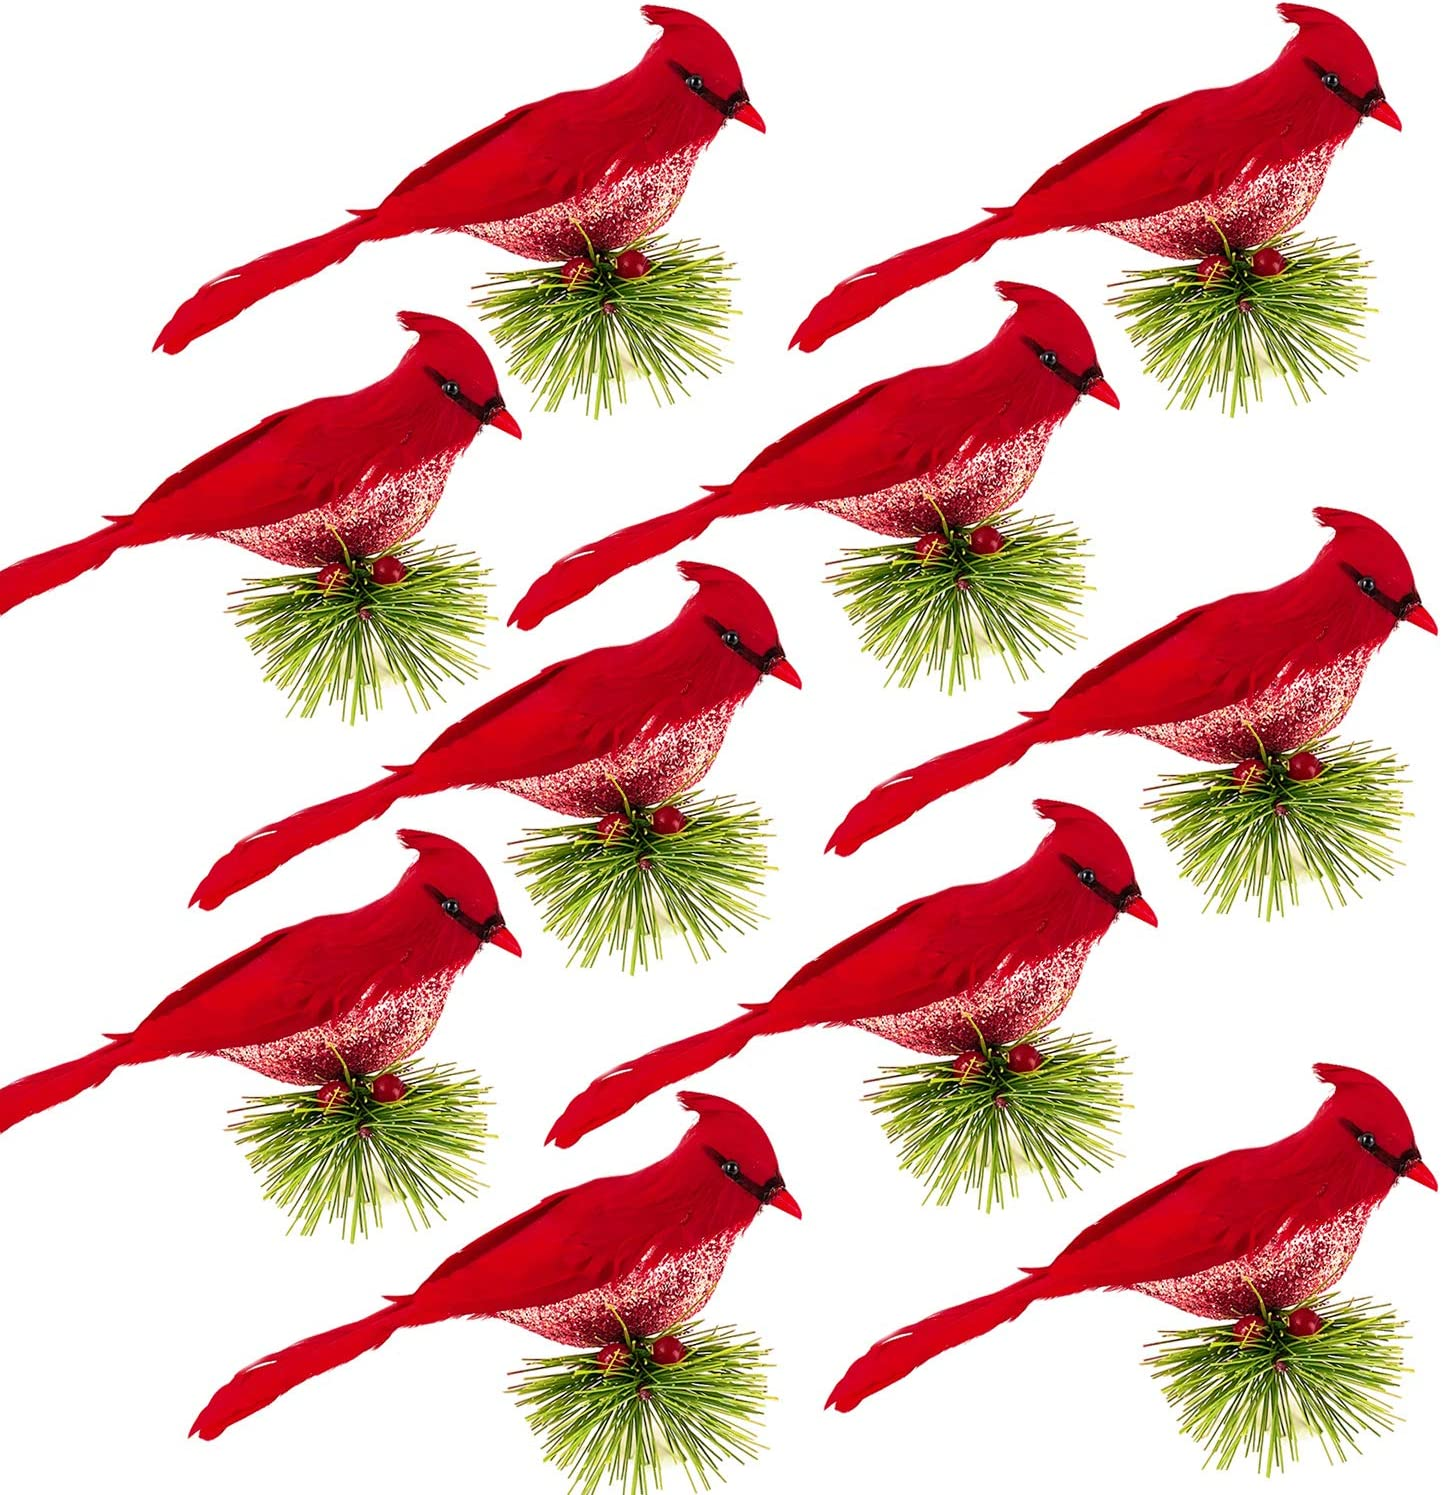 Alpurple 10 Packs Artificial Red Cardinal Birds Clip on Pine Branche -Christmas Realistic Feathered Birds with Clip for Christmas Tree Ornament Decorations, Arts and Crafts (Red)